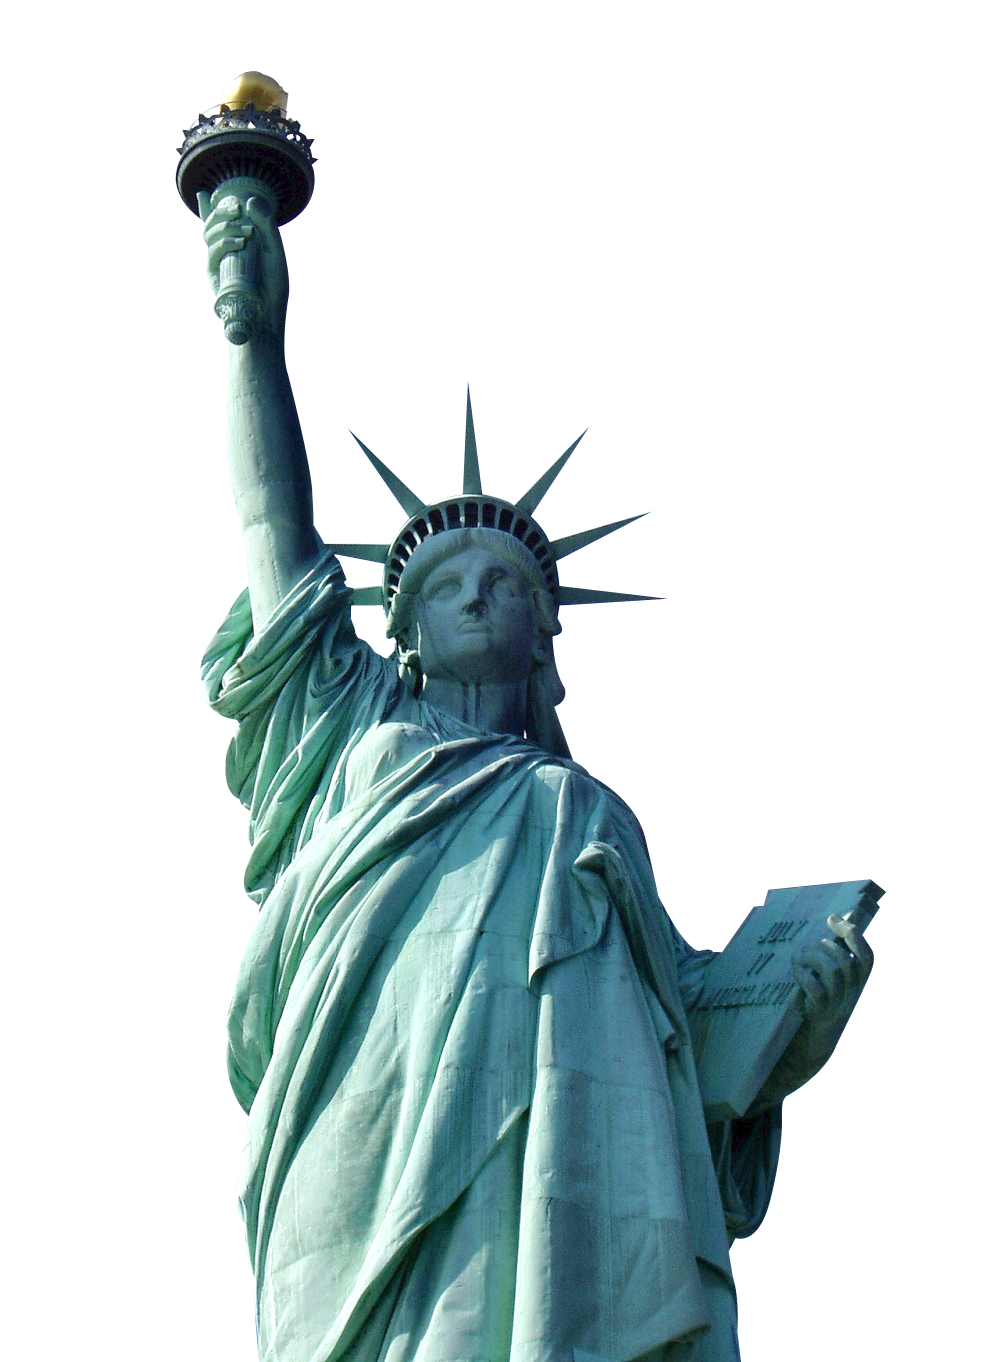 Statue of Liberty PNG images free download.